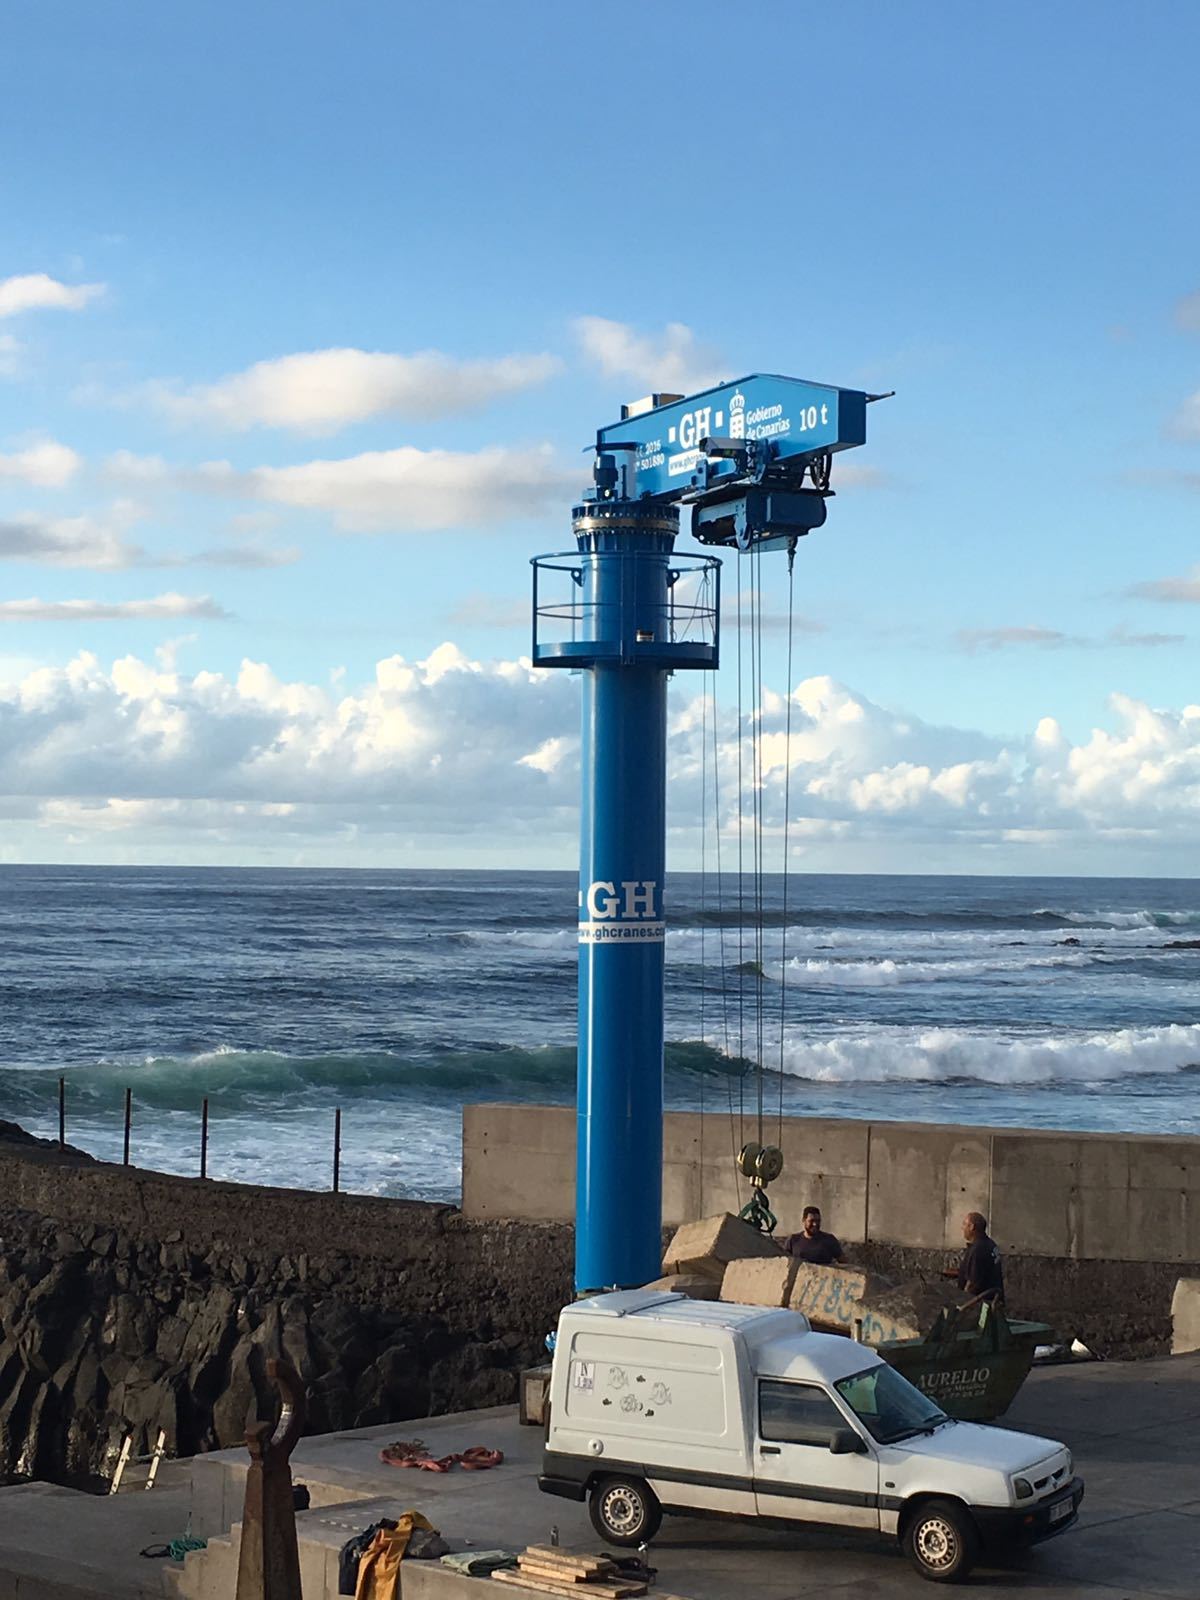 <br>The General Directorate of Ports has fitted the jib crane with a lifting capacity of 10t and with a boom of 5.5 metres, a column of 7 m and a travel of 11 m in the fishing dock of El Roquete, in the province of La Punta del Hidalgo, in response to one of the most urgent requirements of the fishermen, who from now on, if all the tests go well, will be able to use the apparatus to carry their boats to the sea or onto the esplanade.